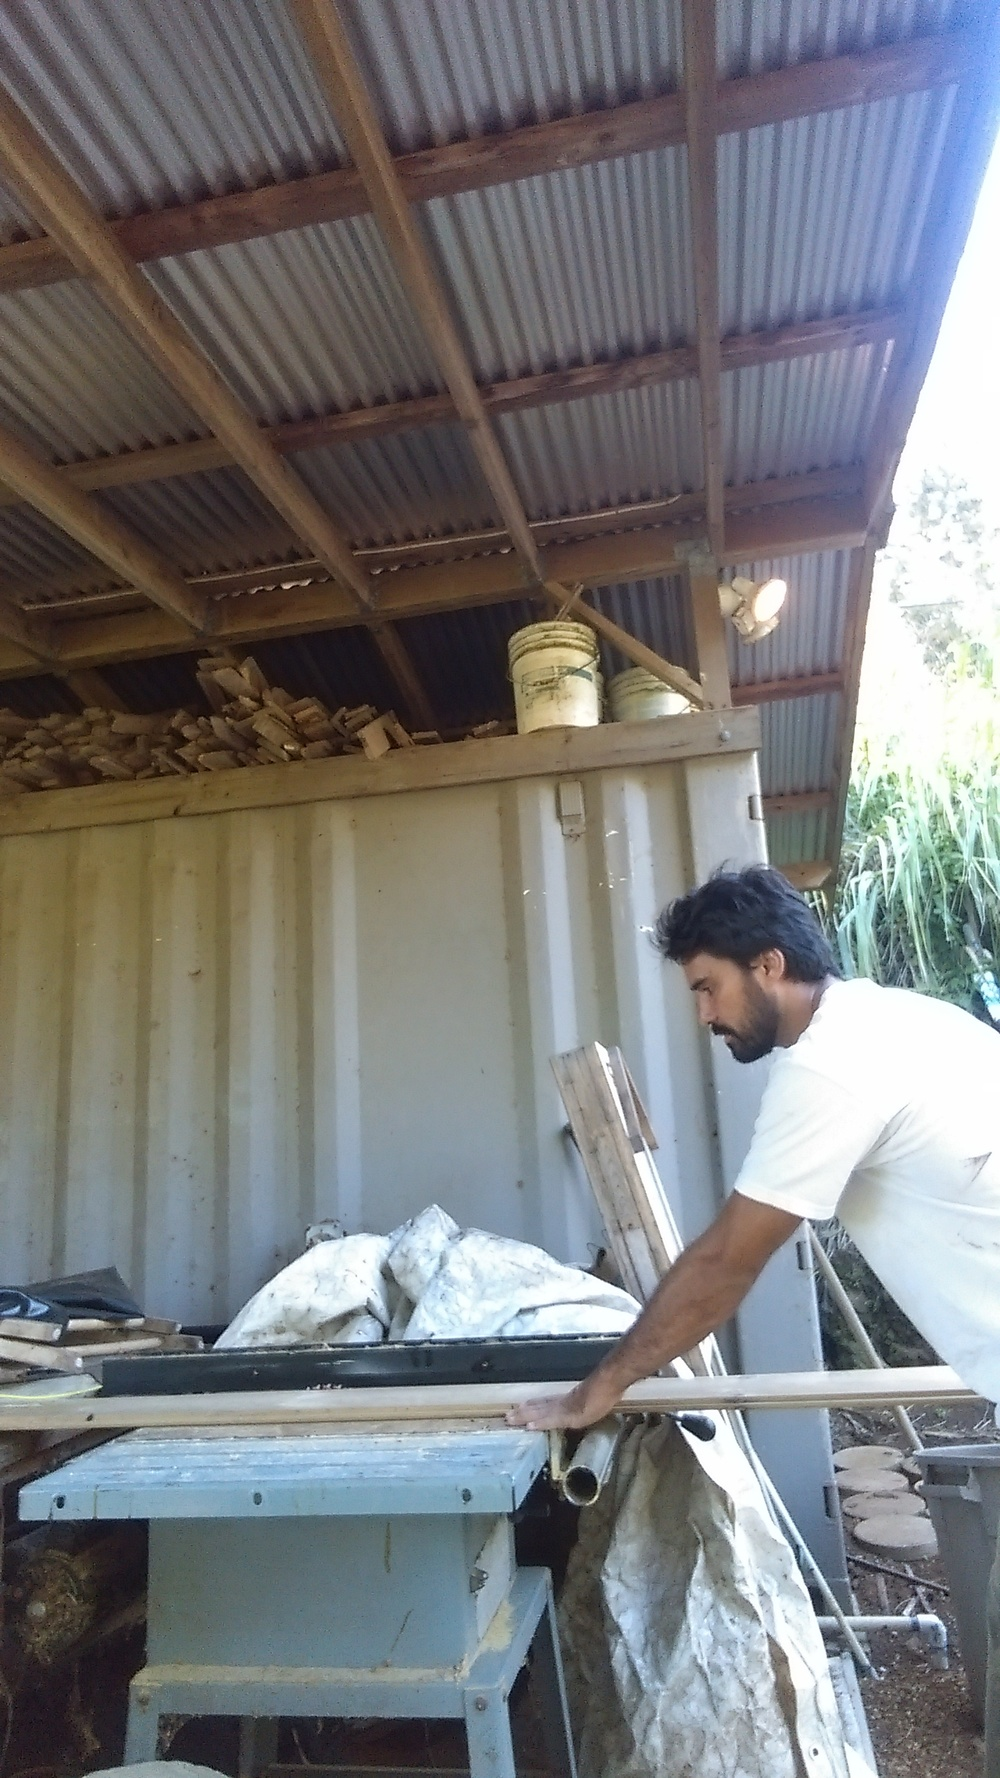 Why do I have a picture of me cutting wood on a table saw...I'm not sure, but tablesaws are cool.